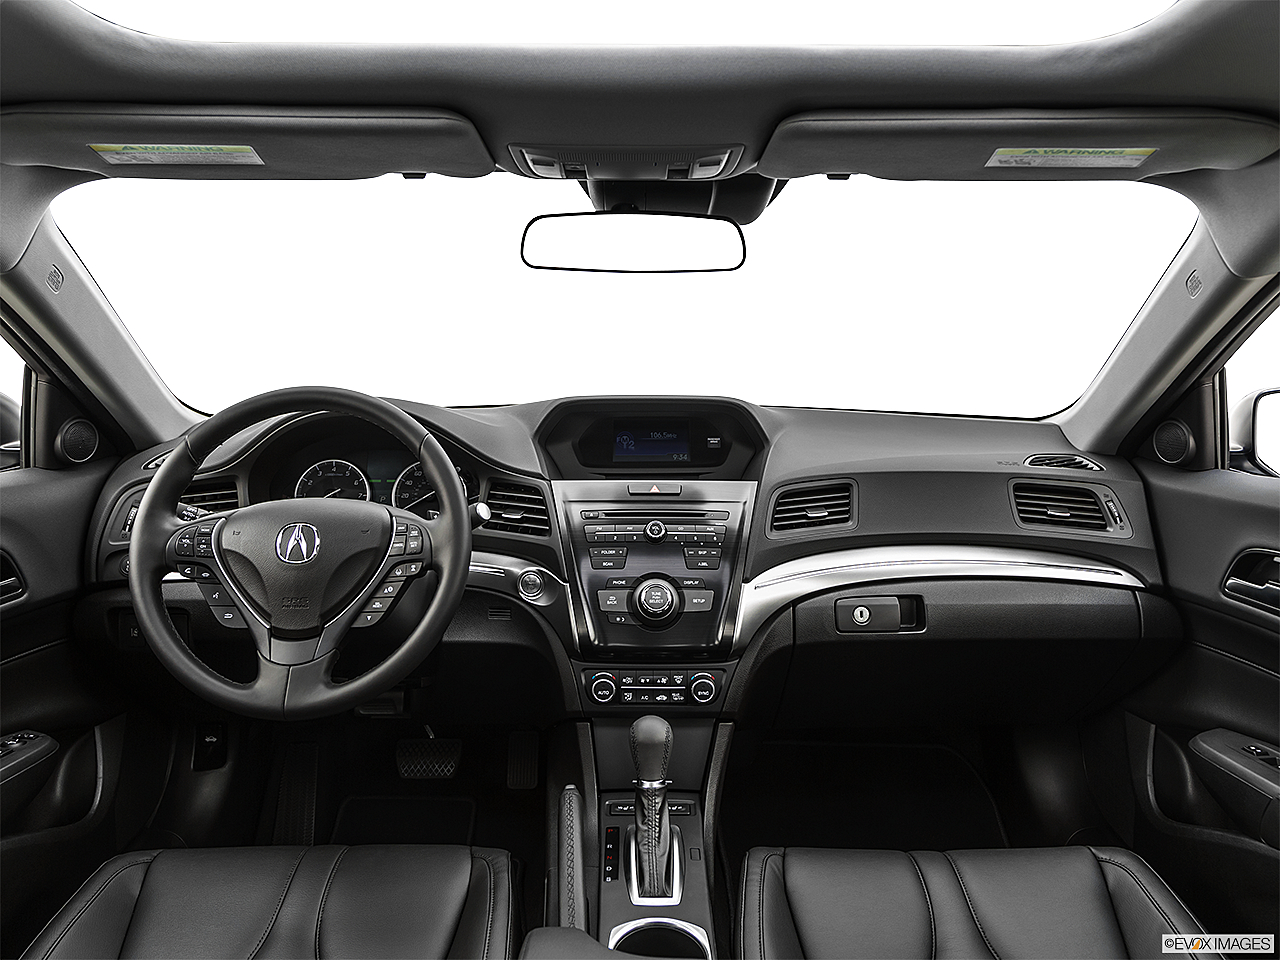 2019 Acura ILX, centered wide dash shot